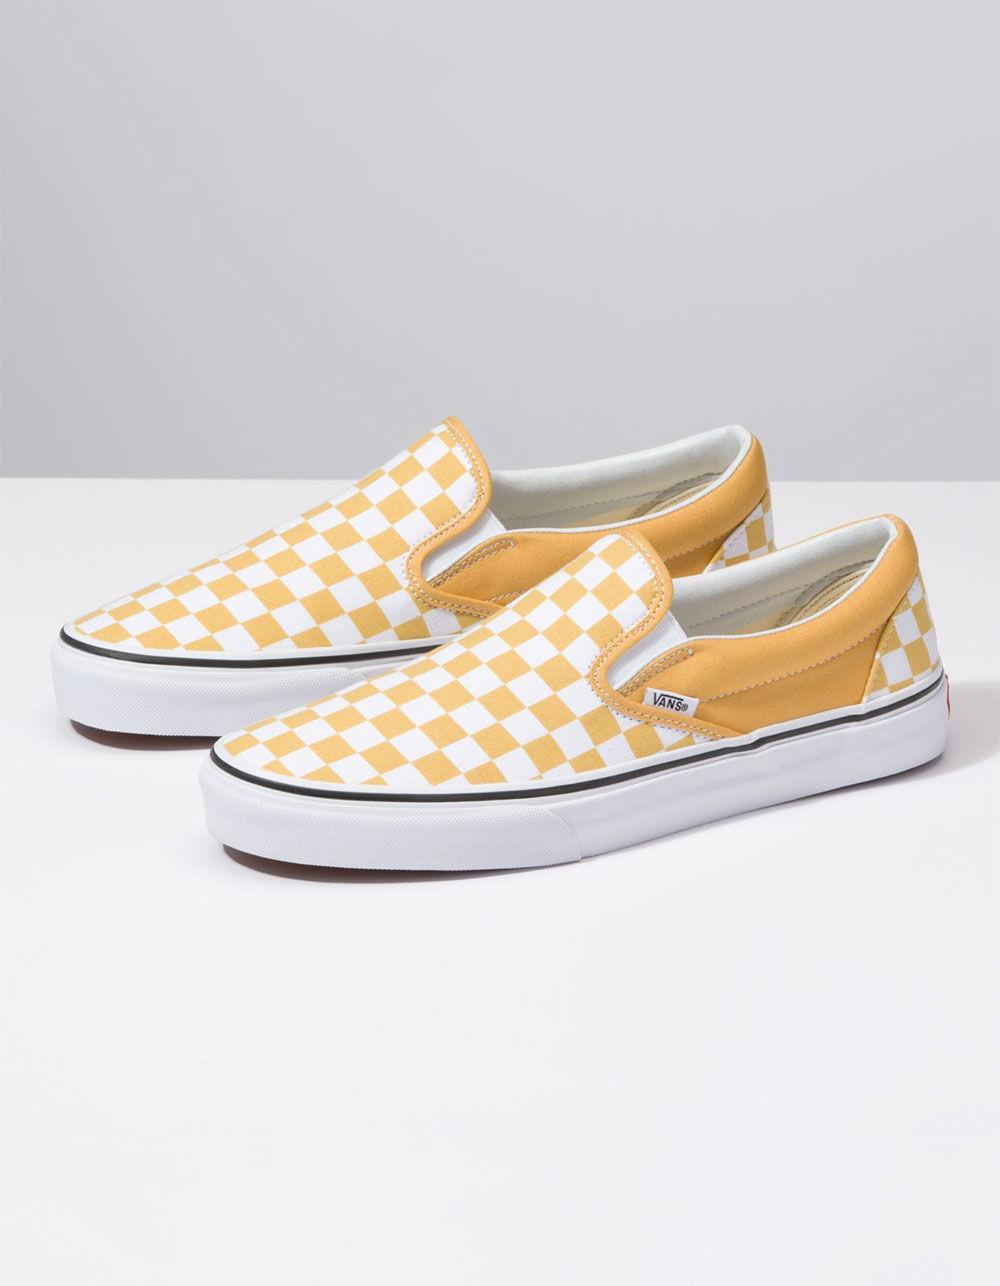 928b38927596 Lyst - Vans Checkerboard Classic Slip-on Ochre   True White Shoes in White